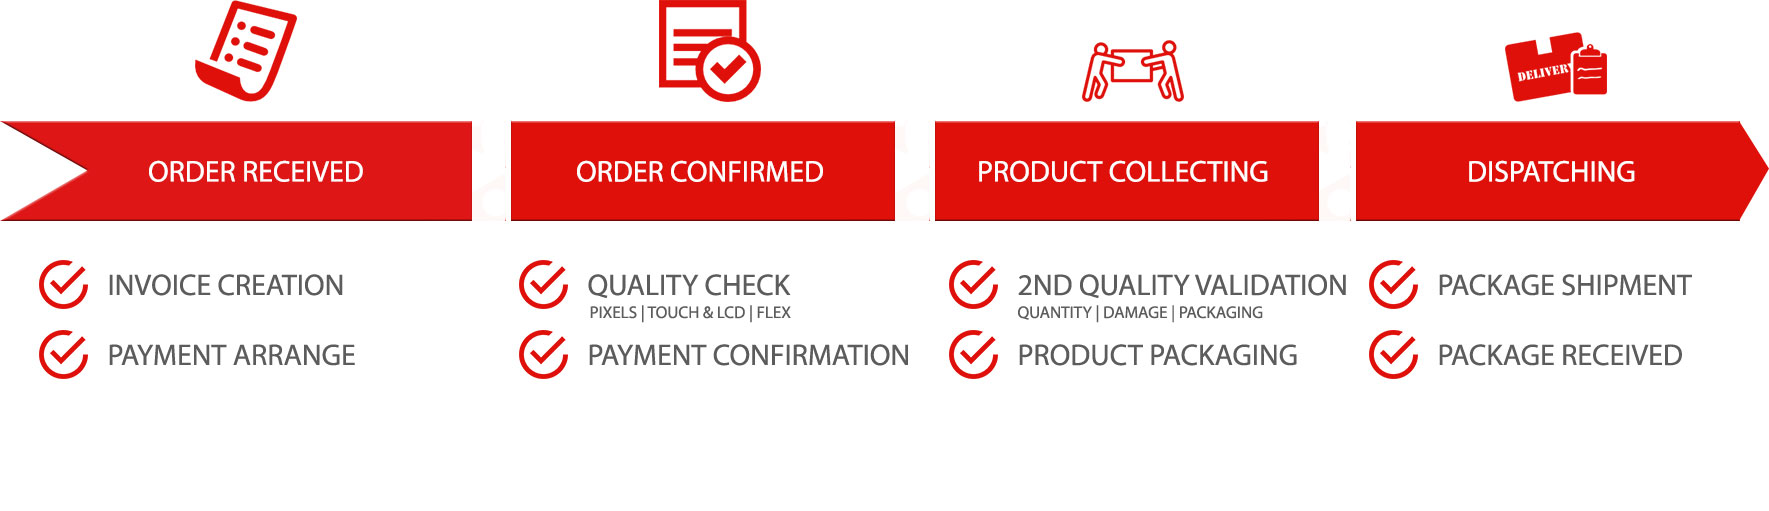 The order process at GPC is very fast, easy and professional